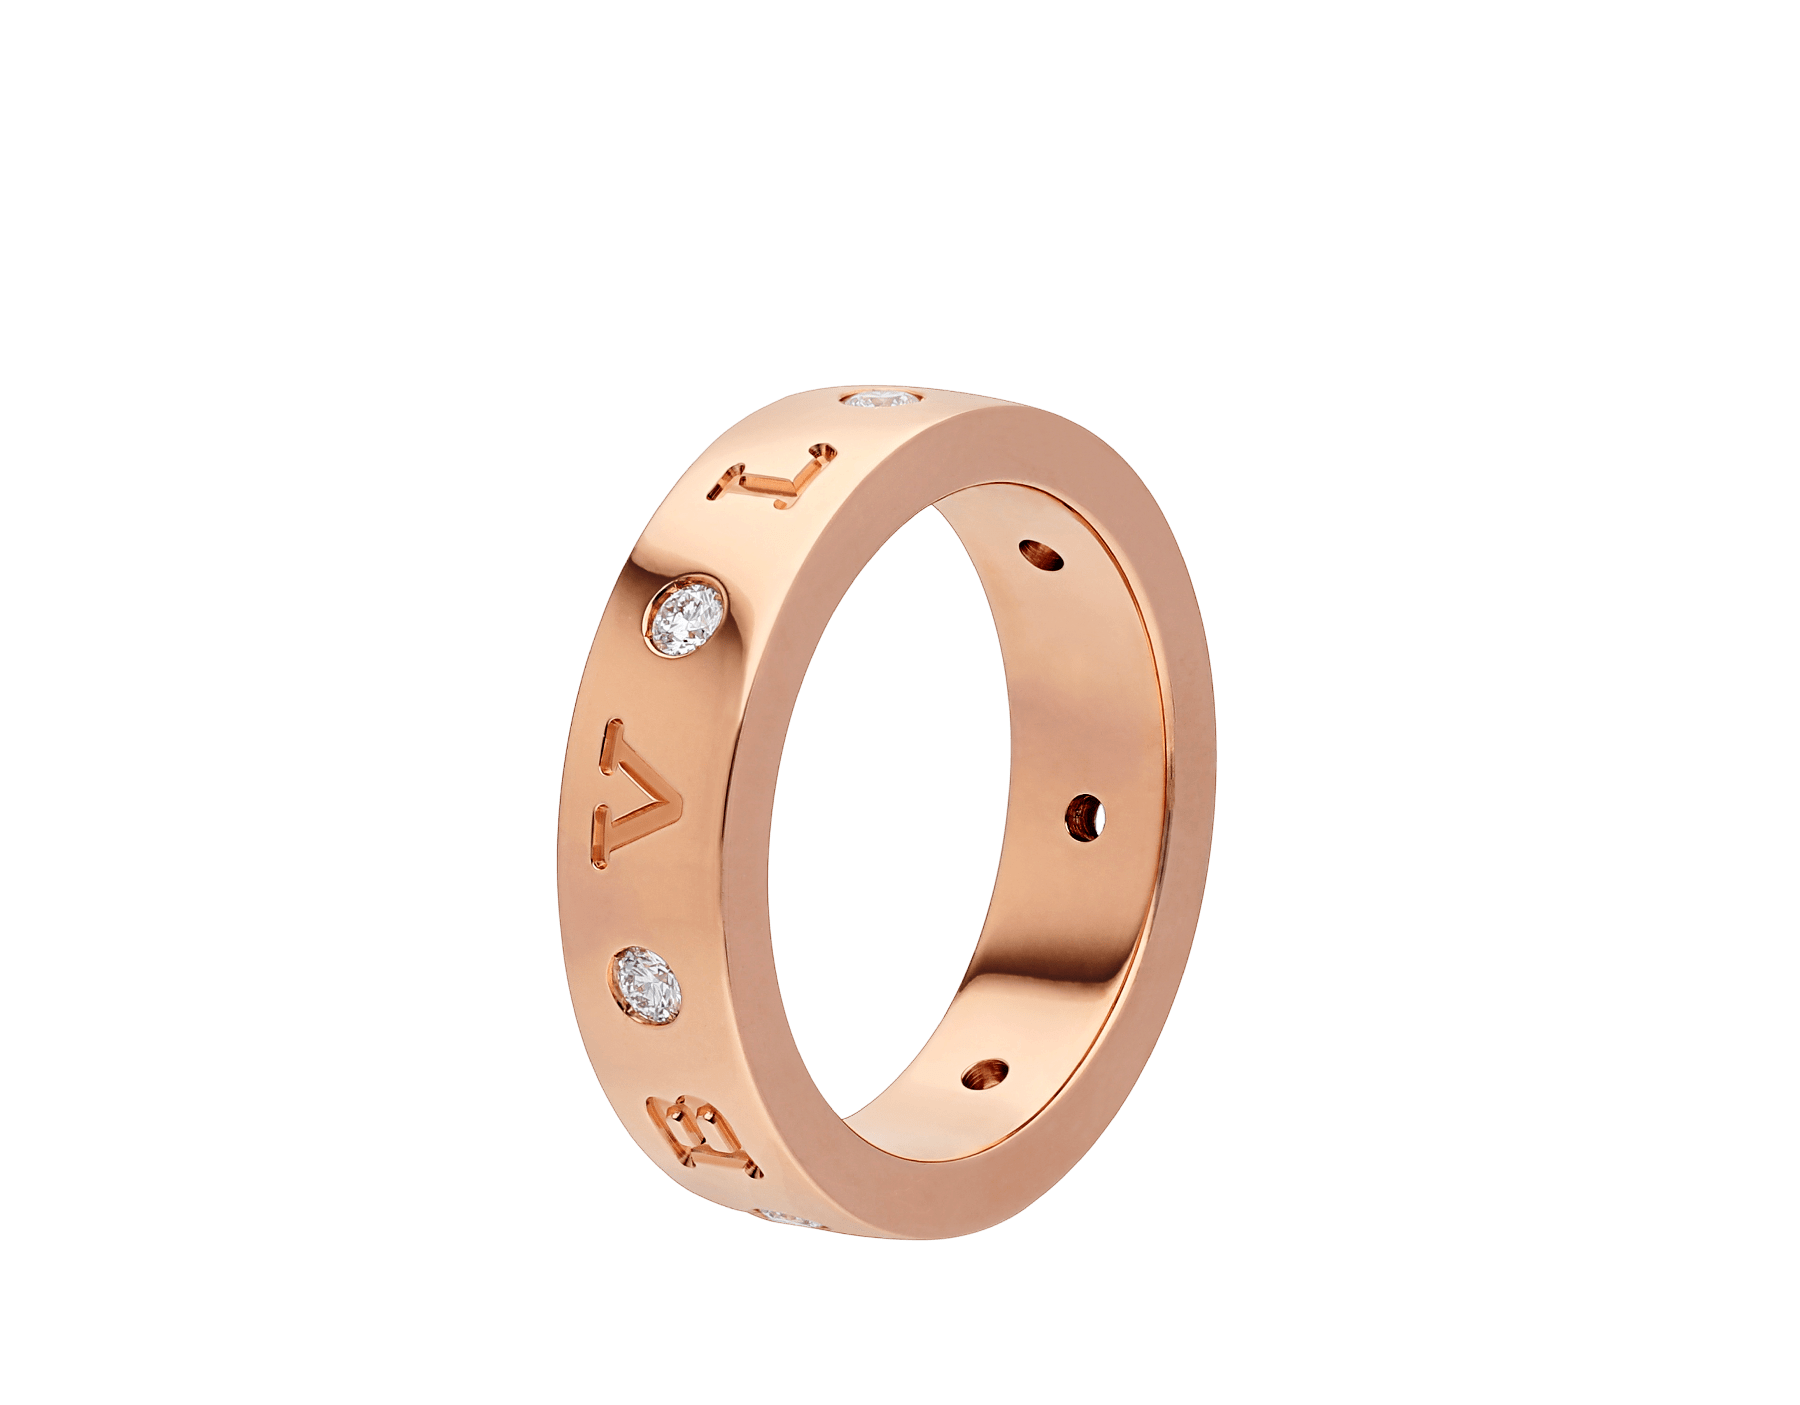 Bague BVLGARI BVLGARI en or rose 18 K sertie de sept diamants (0,20 ct) AN858005 image 2